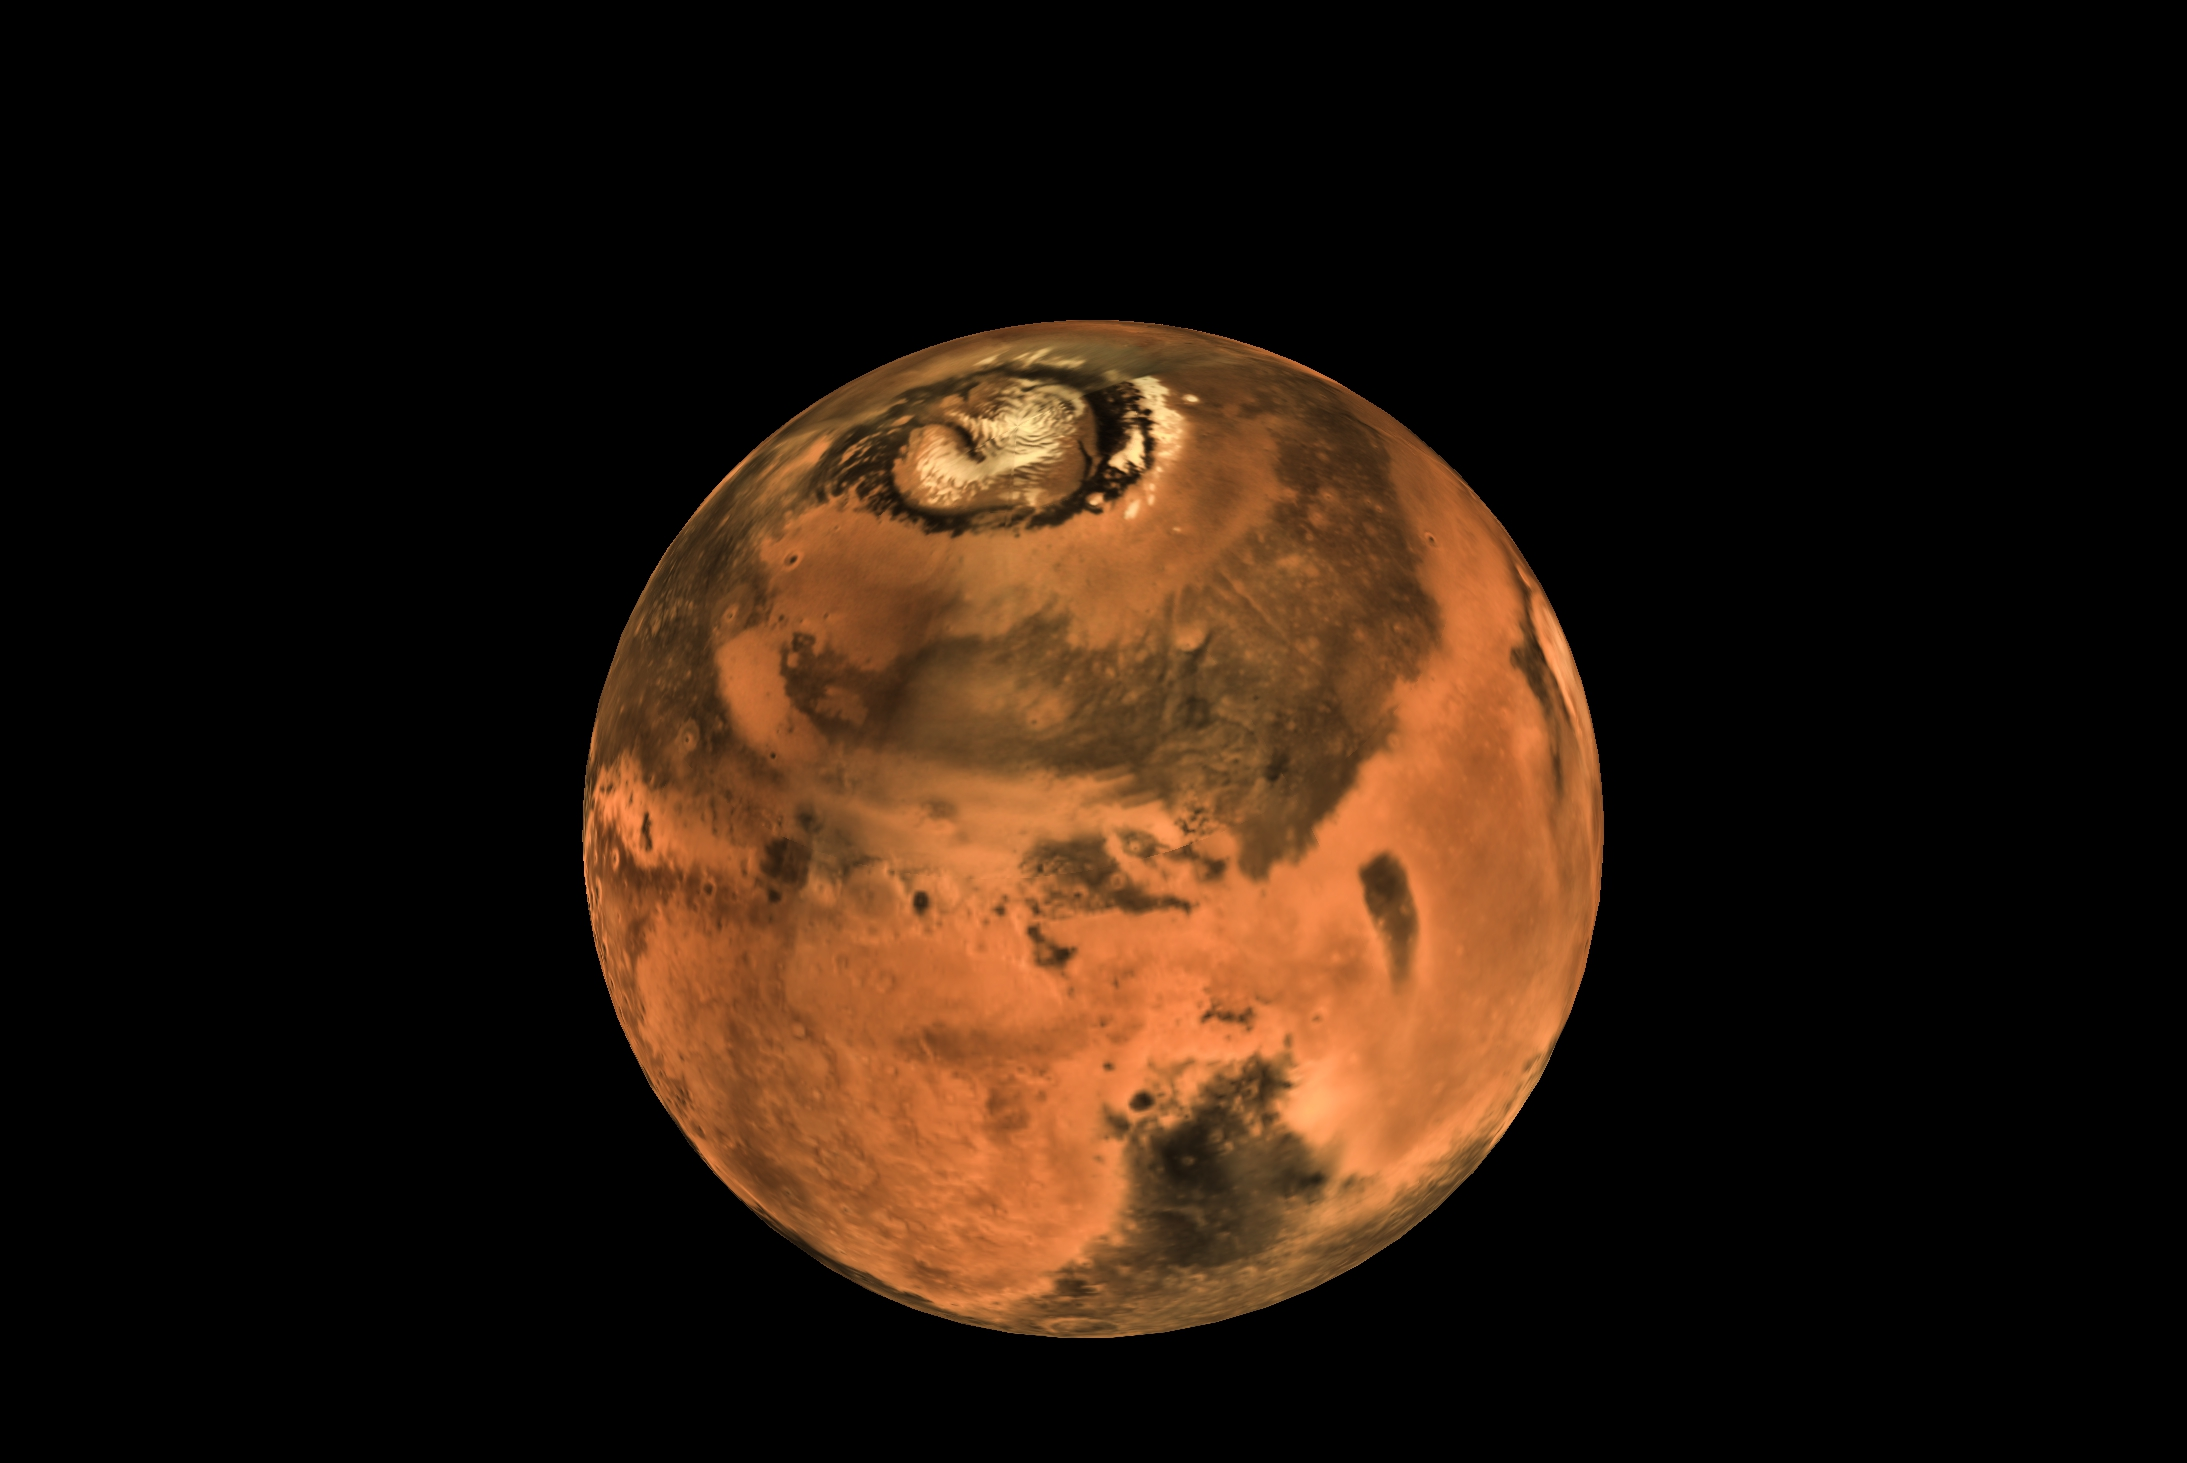 Mars global mosaic image